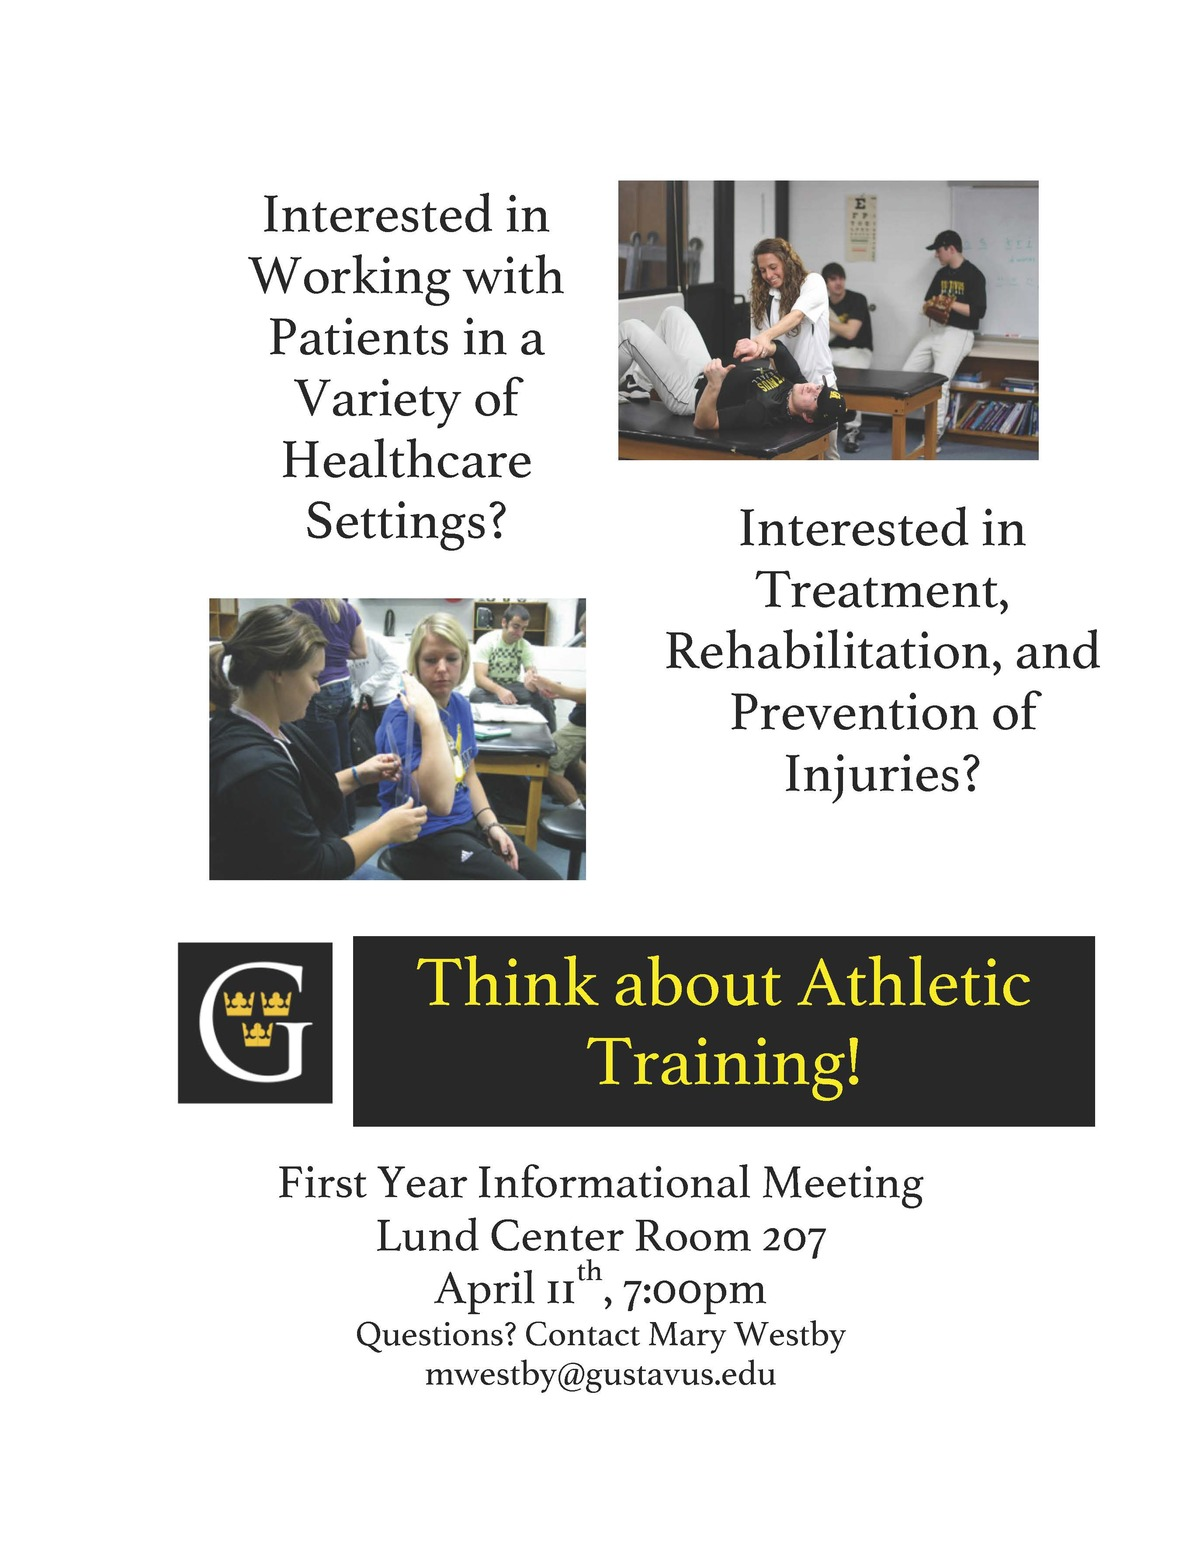 Athletic training welcome health exercise science first year informational meeting flyer the gustavus adolphus college athletic training 1betcityfo Choice Image